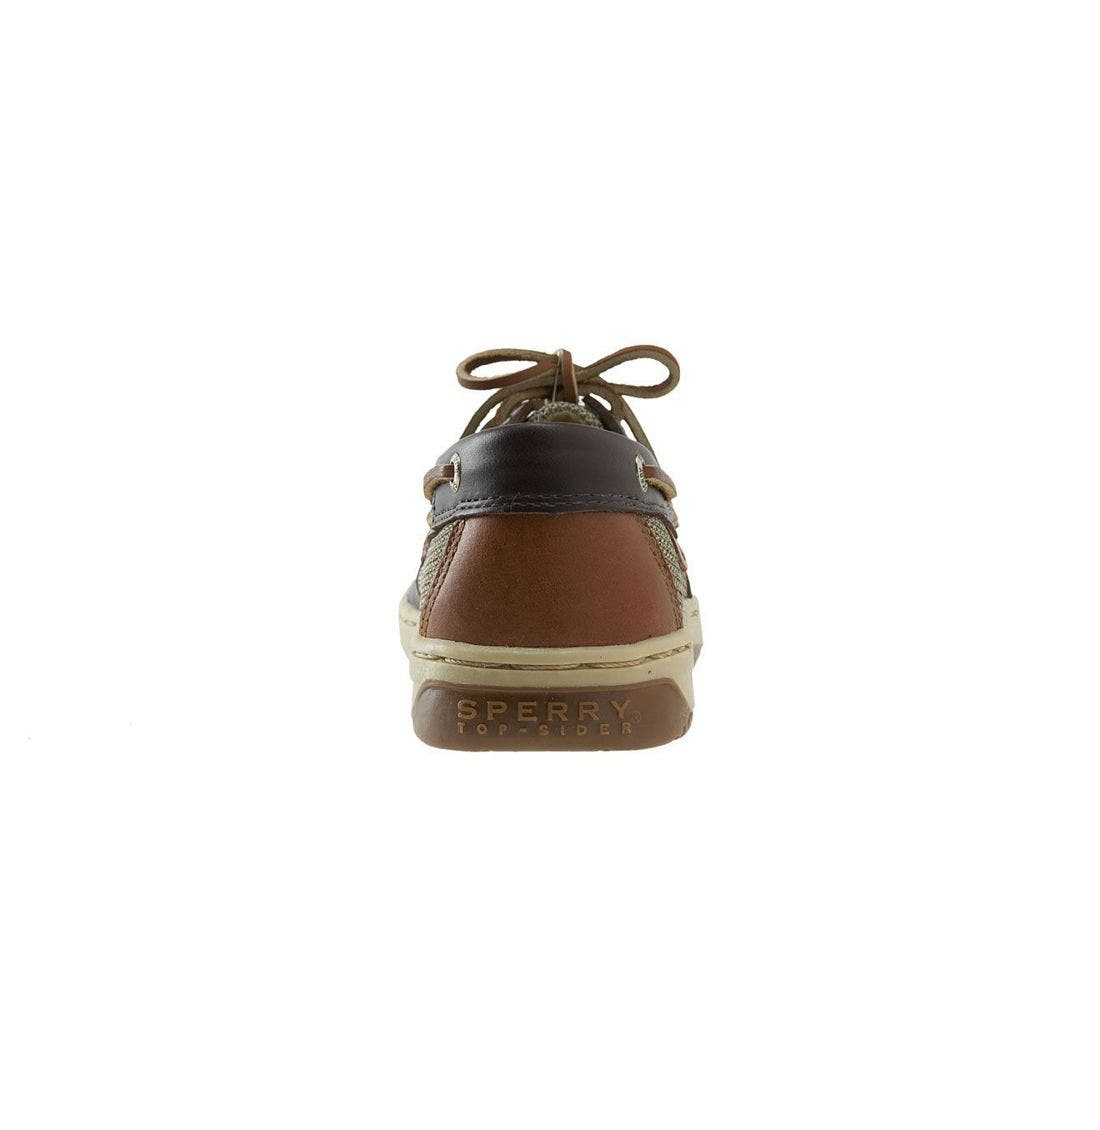 Alternate Image 3  - Sperry Kids 'Bluefish' Boat Shoe (Walker, Toddler, Little Kid & Big Kid)